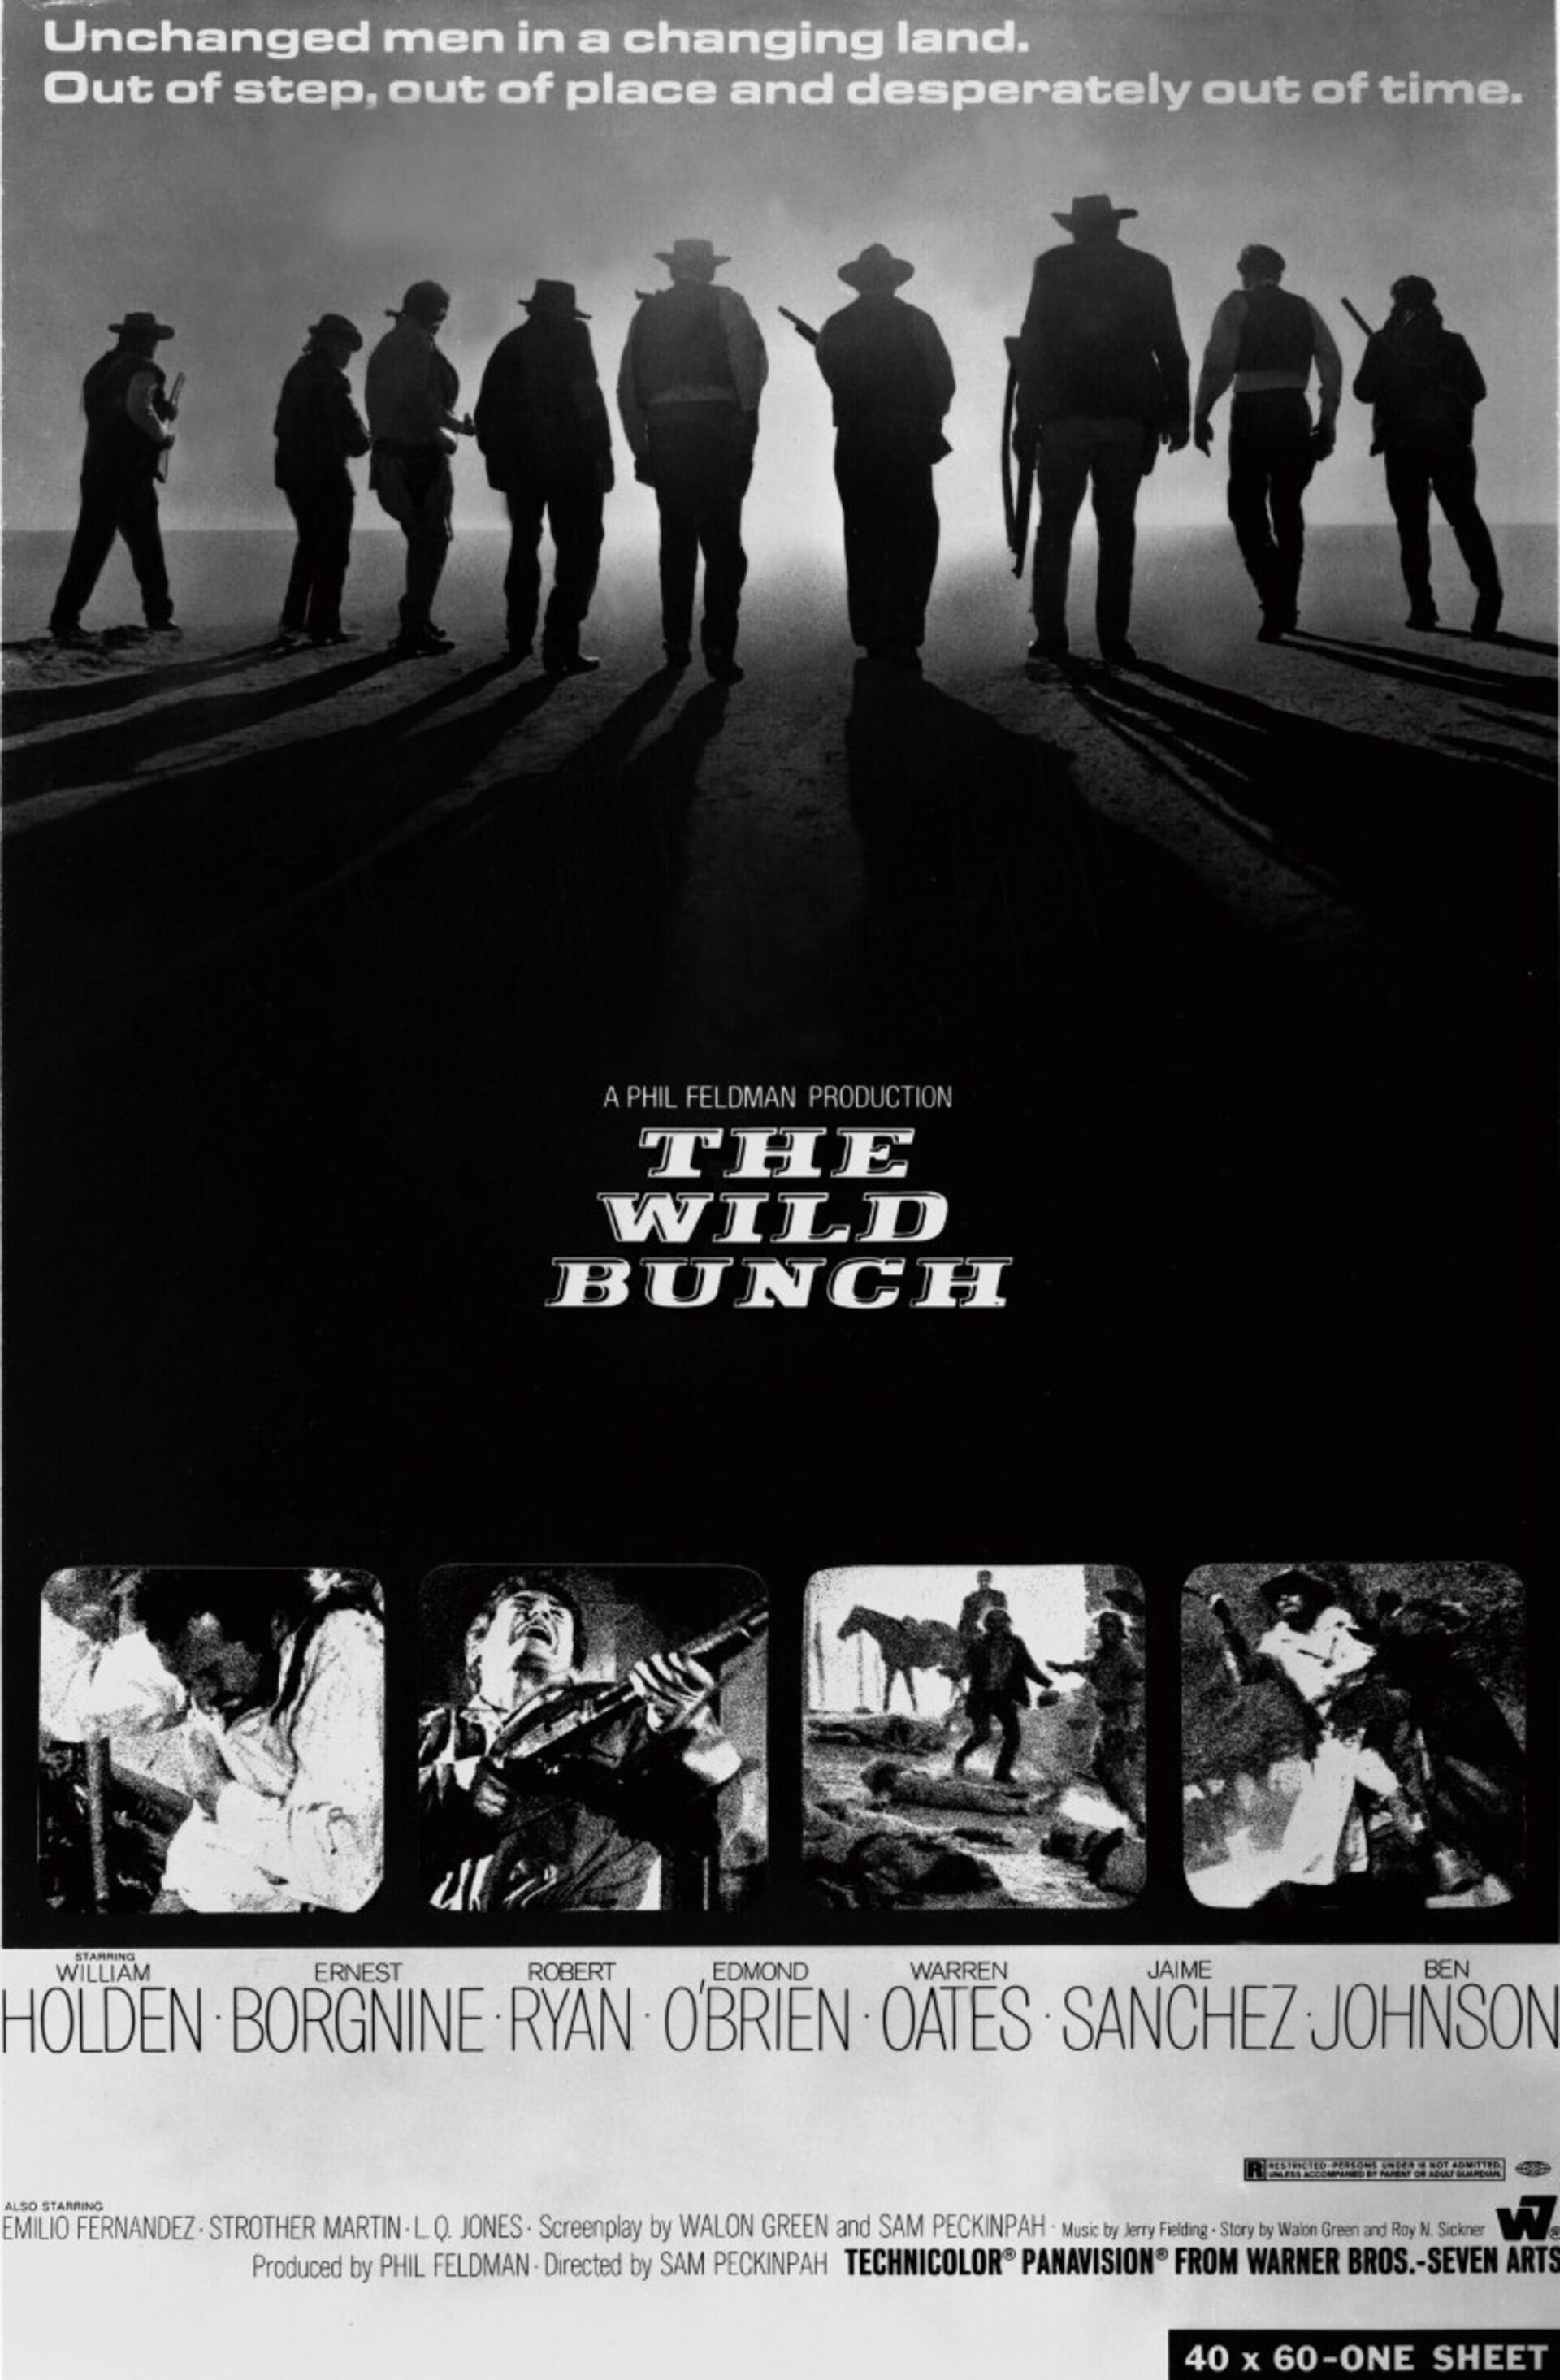 The Wild Bunch - Poster 14